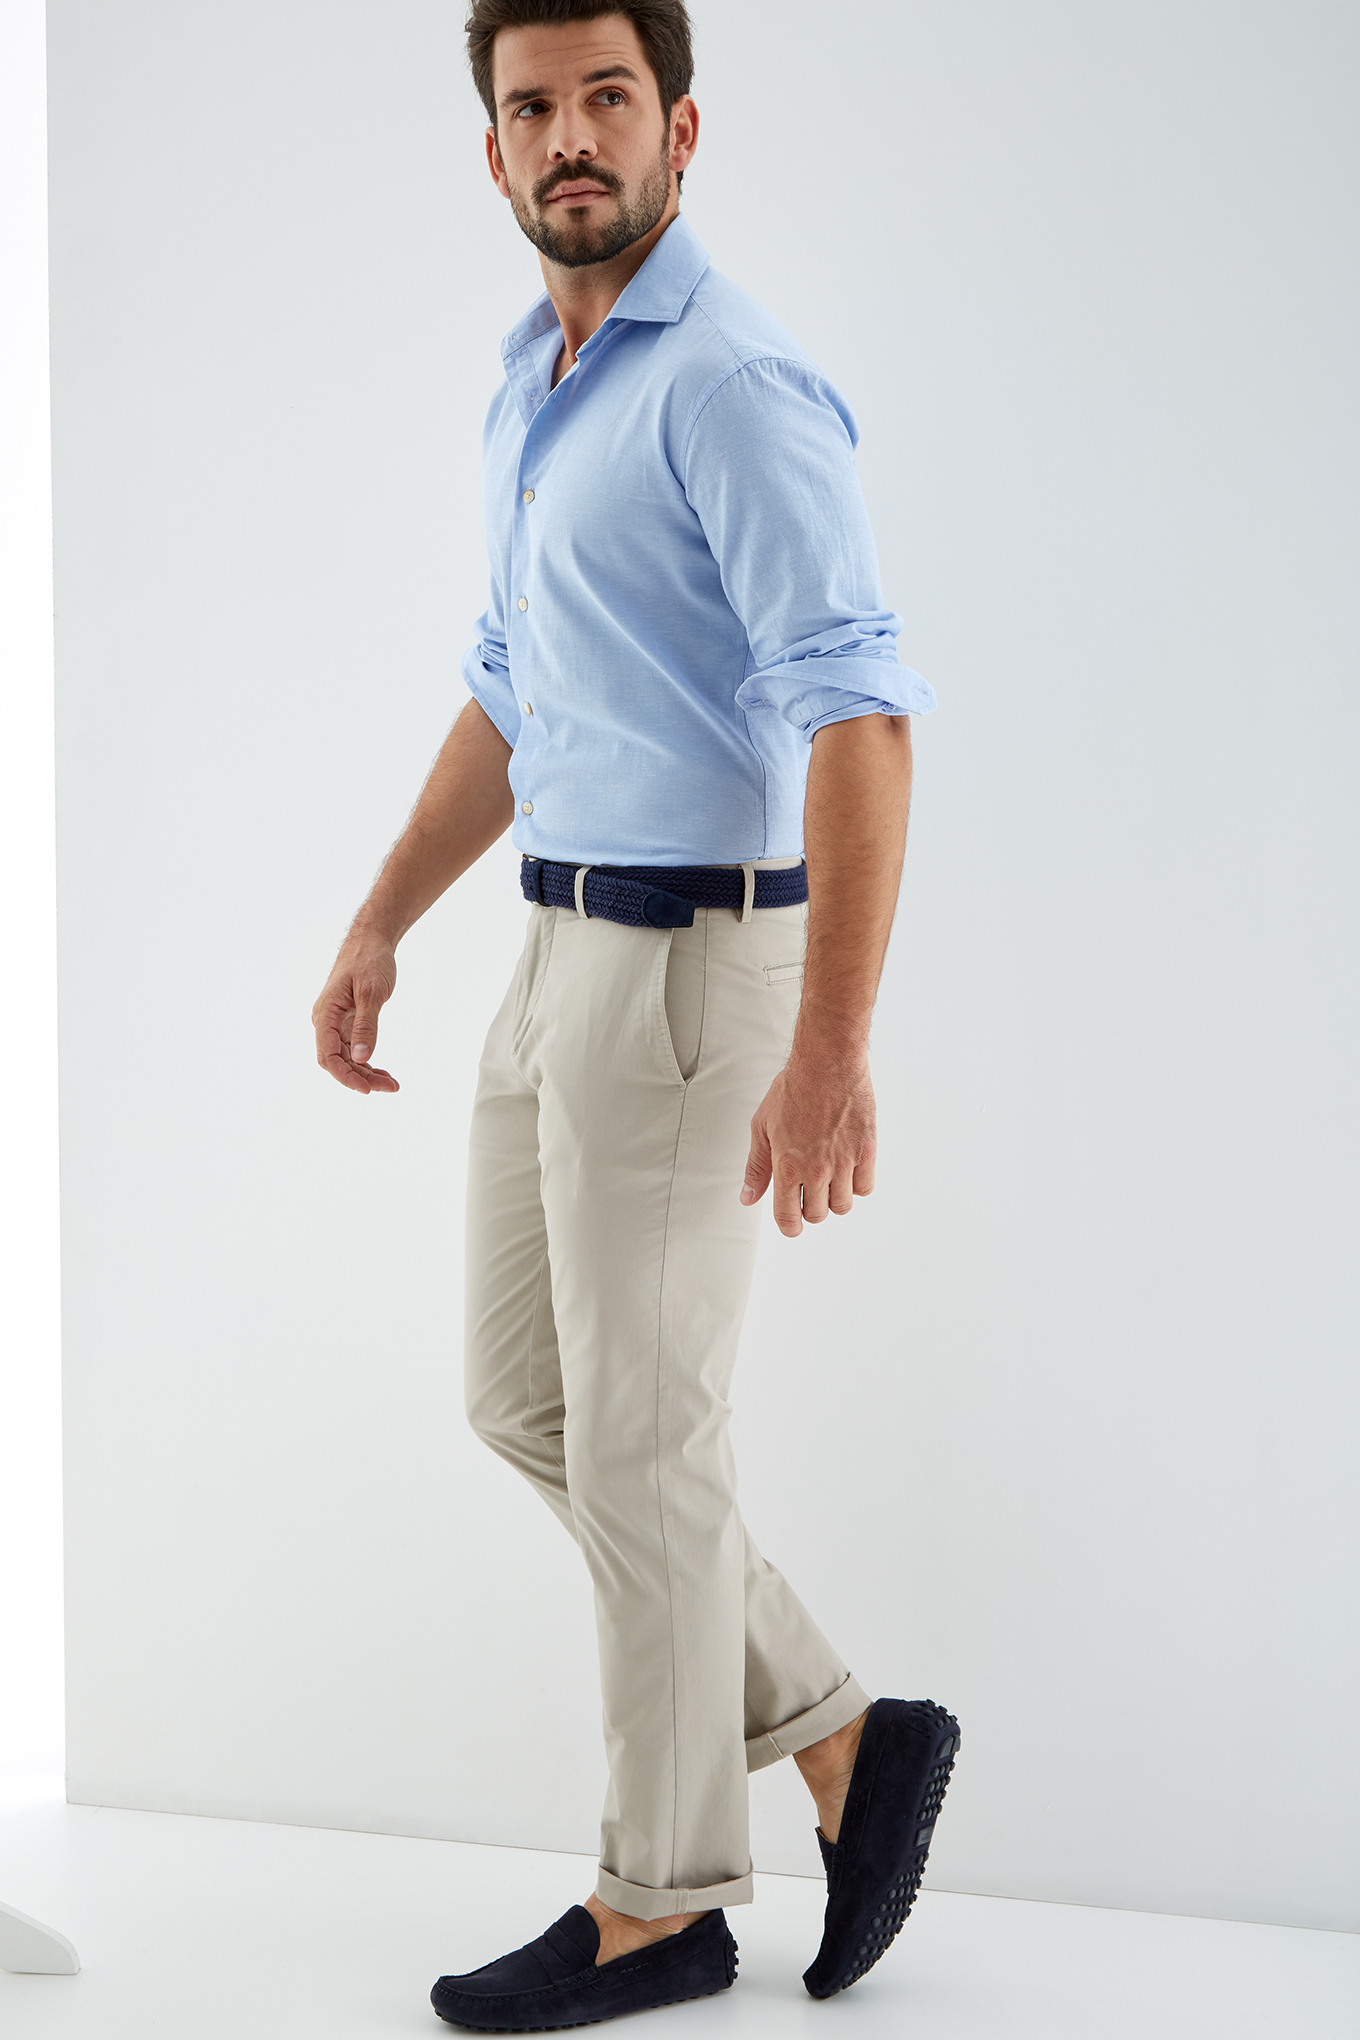 Shirt Light Blue Casual Man